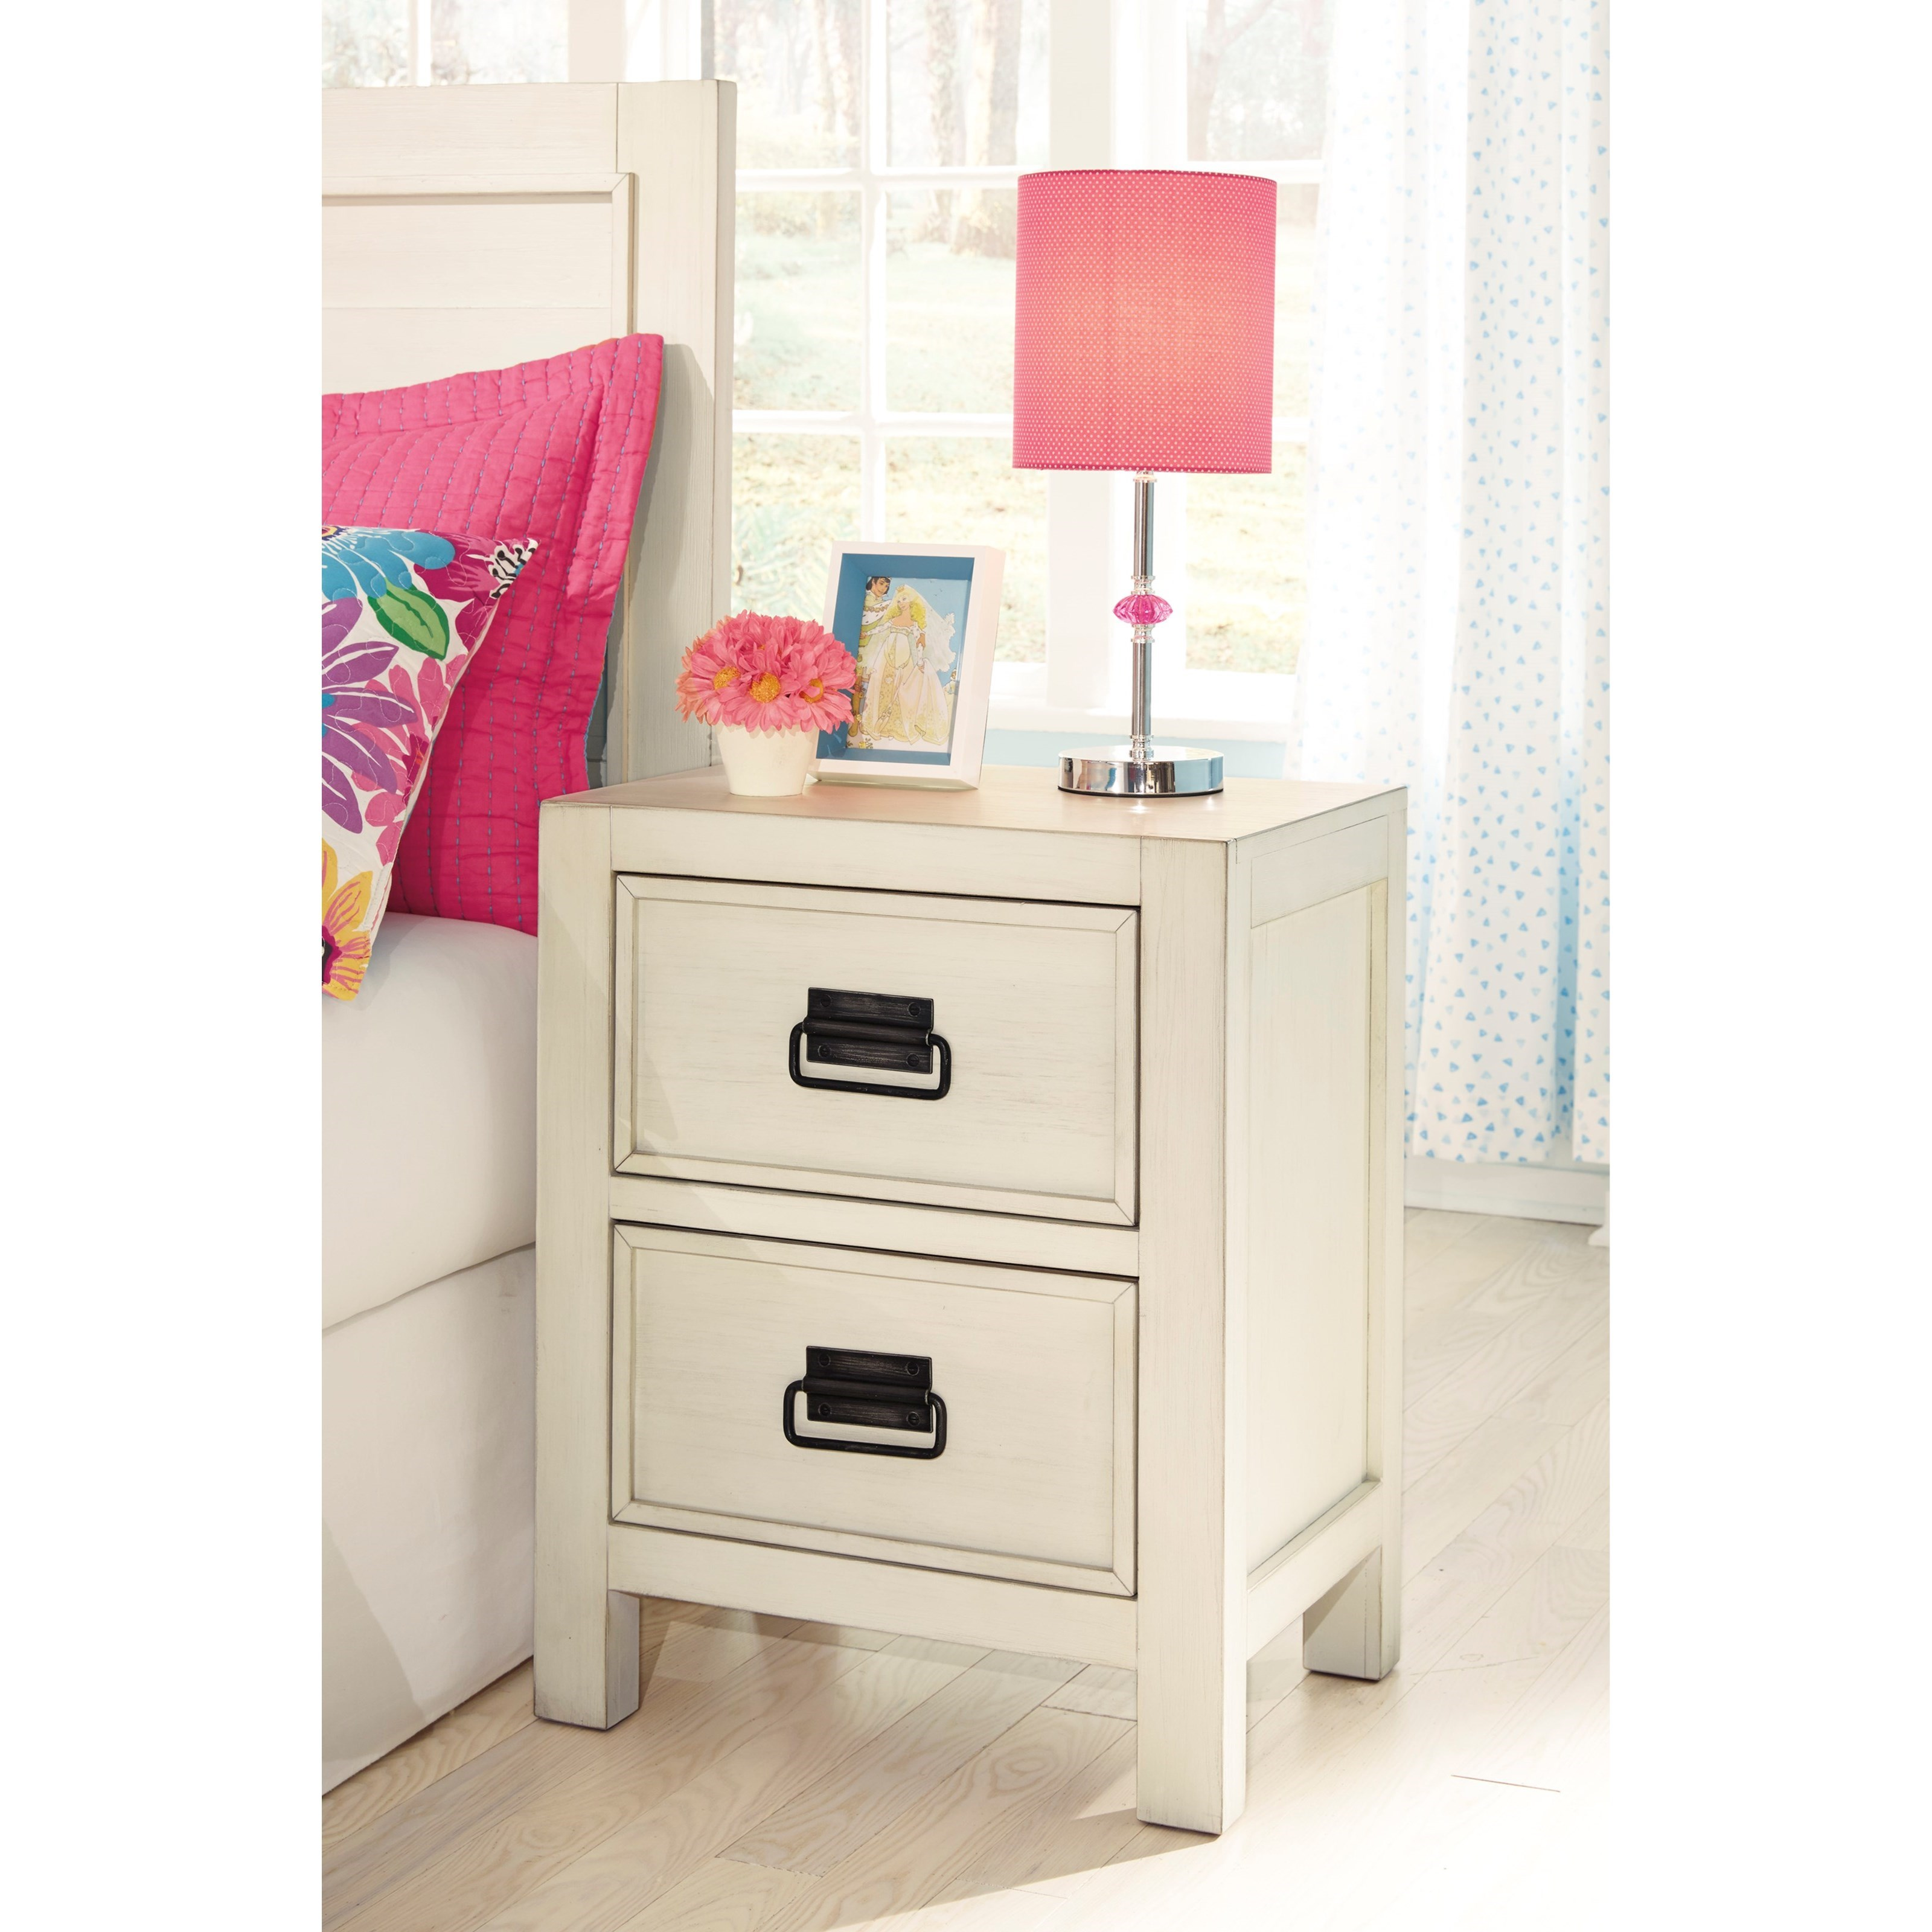 Signature Design By Ashley Blinton B523 92 2 Drawer Nightstand In White Finish Furniture And